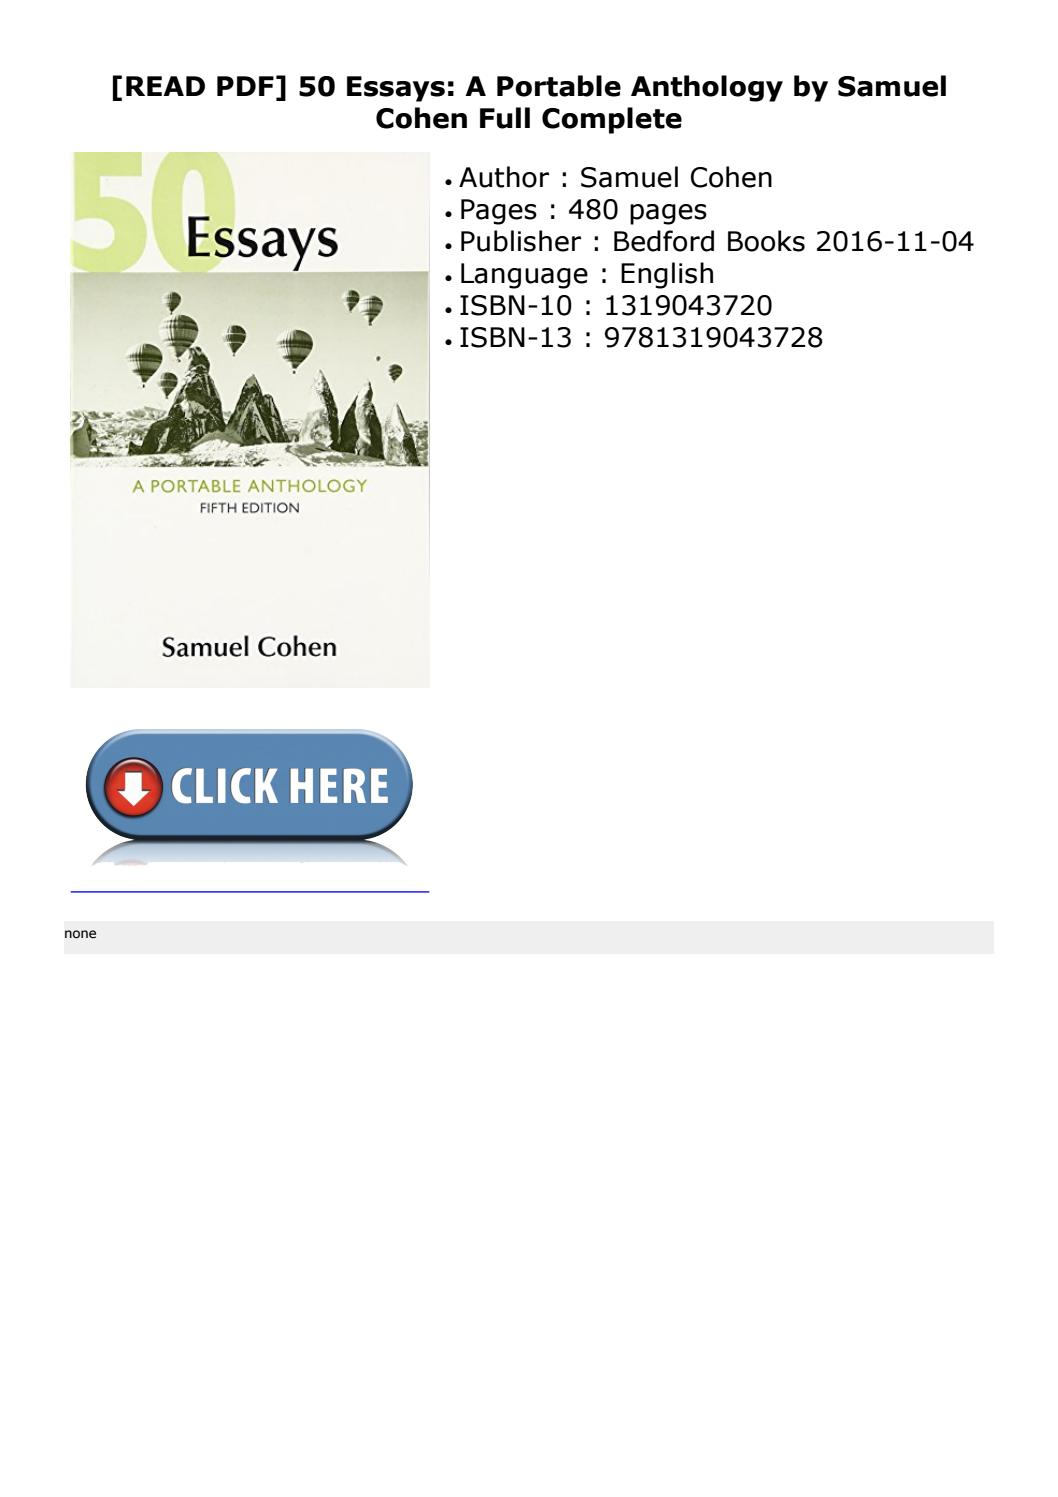 021 Page 1 Essays 5th Edition Essay Imposing 50 Fifty Great Pdf Free A Portable Anthology Ebook Full